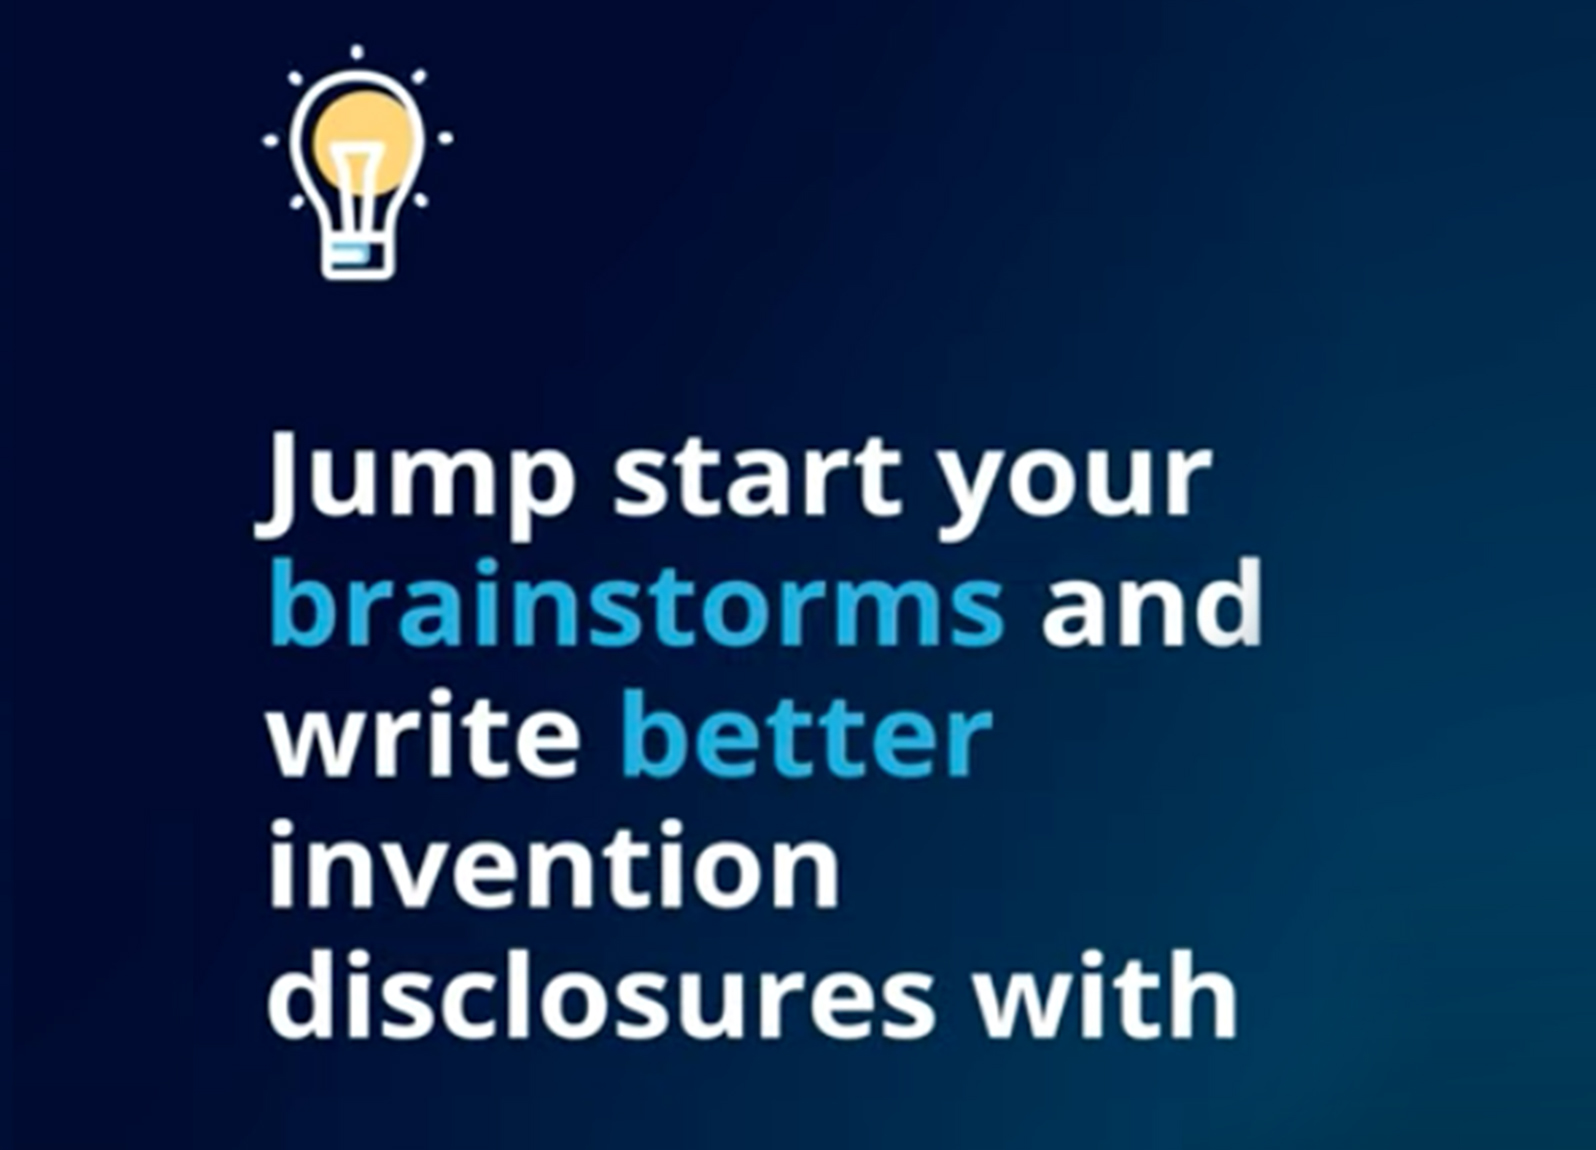 Jump start your brainstorms and write better invention disclosures with